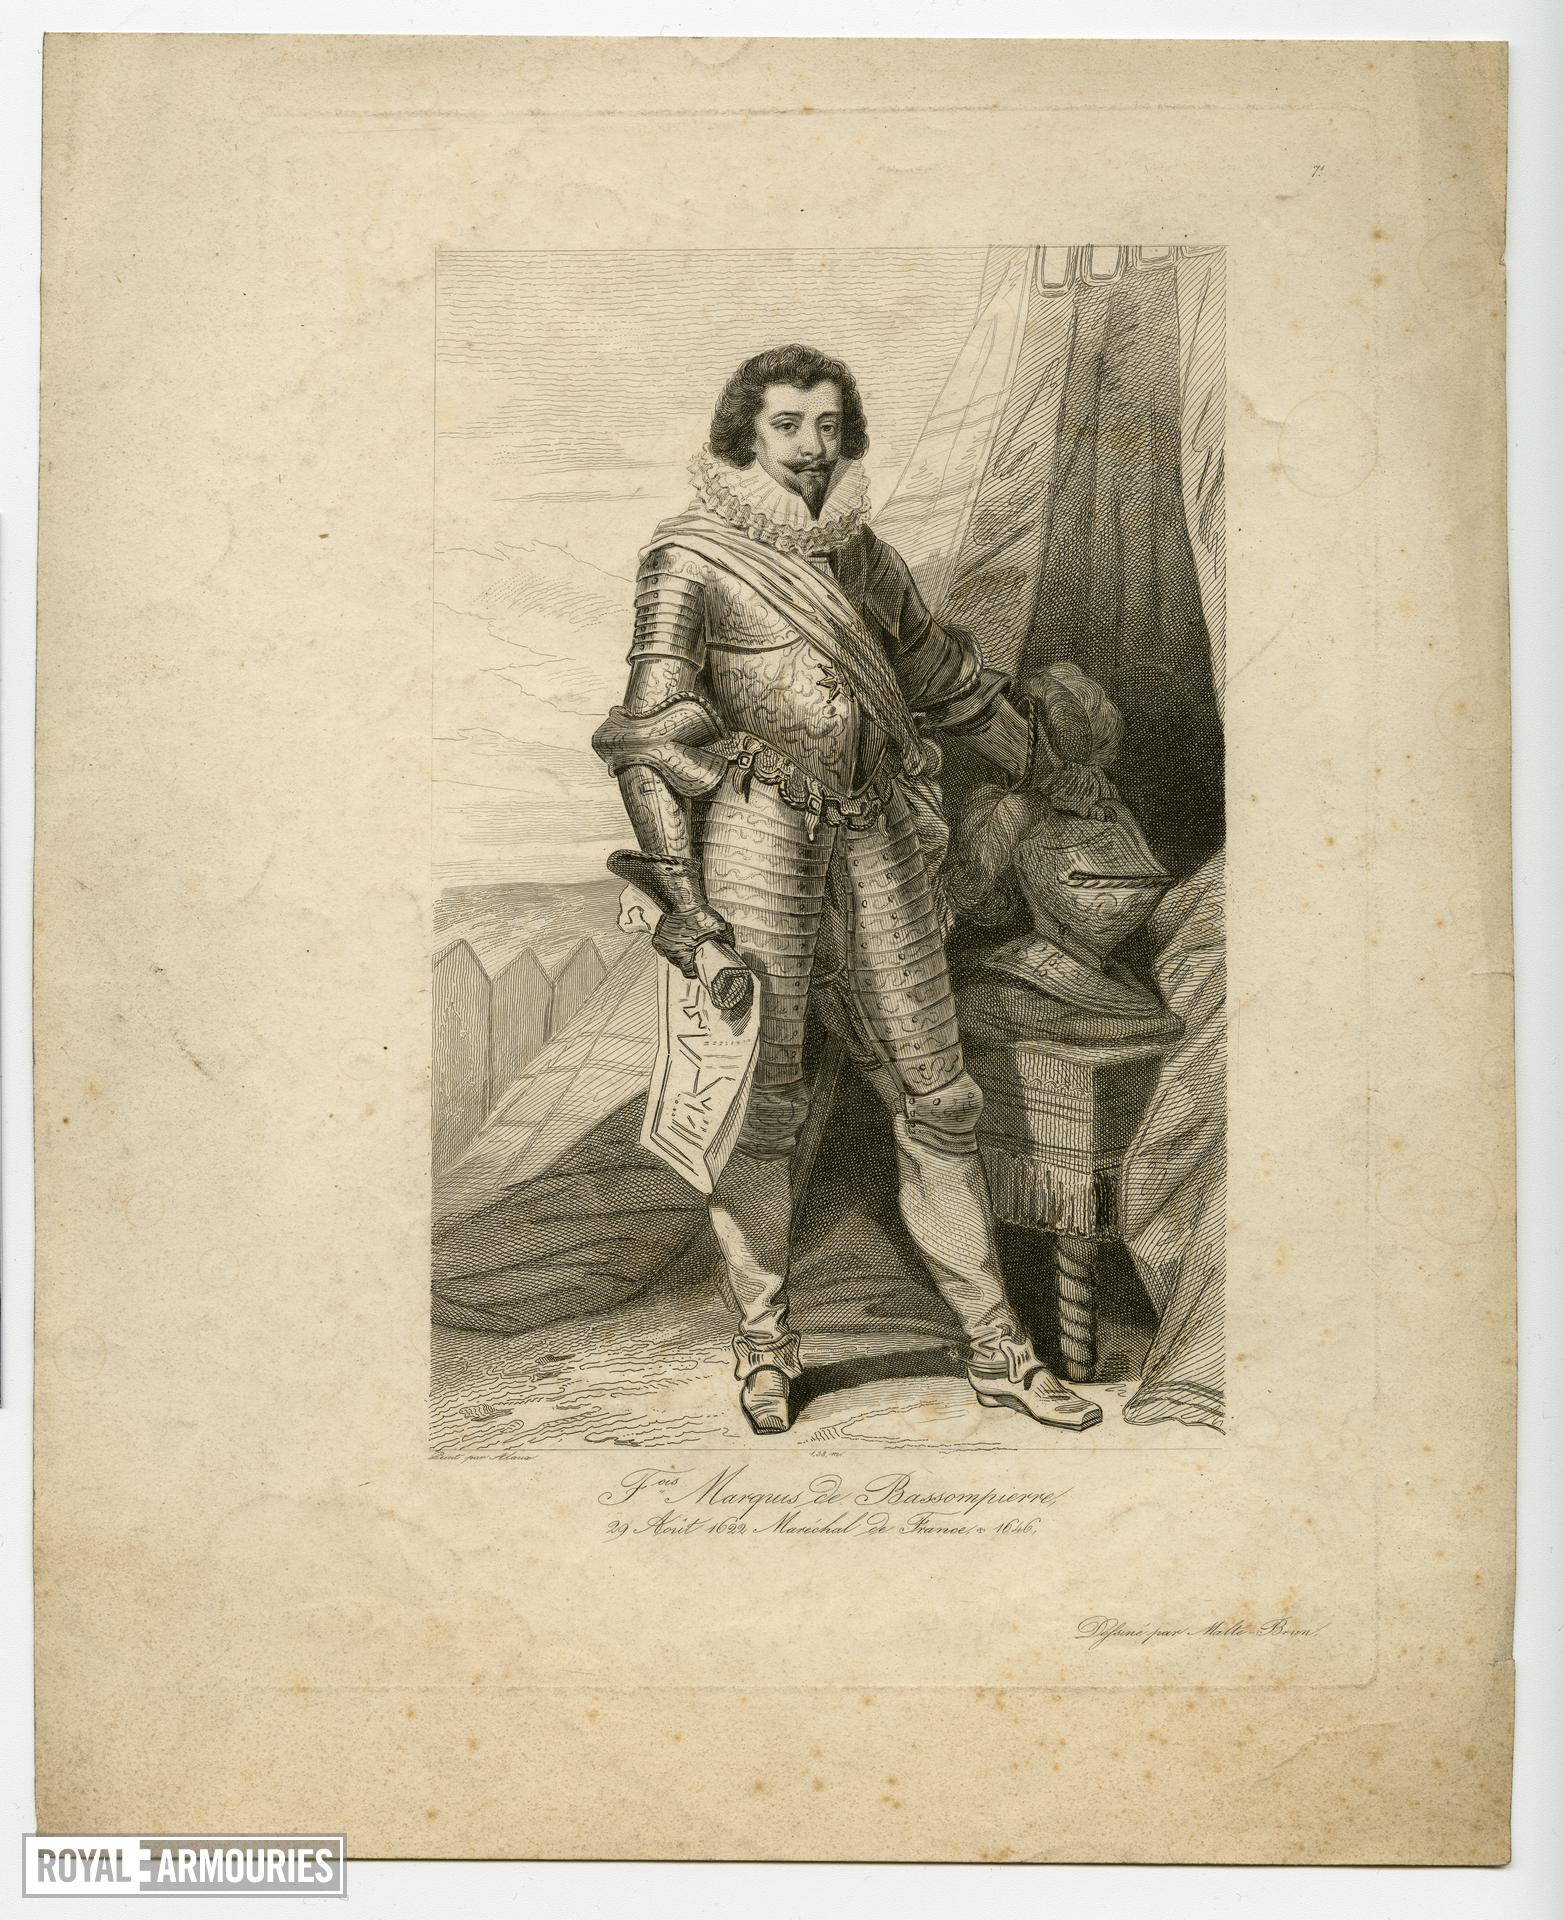 Engraving of the Marquis de Bassompiere